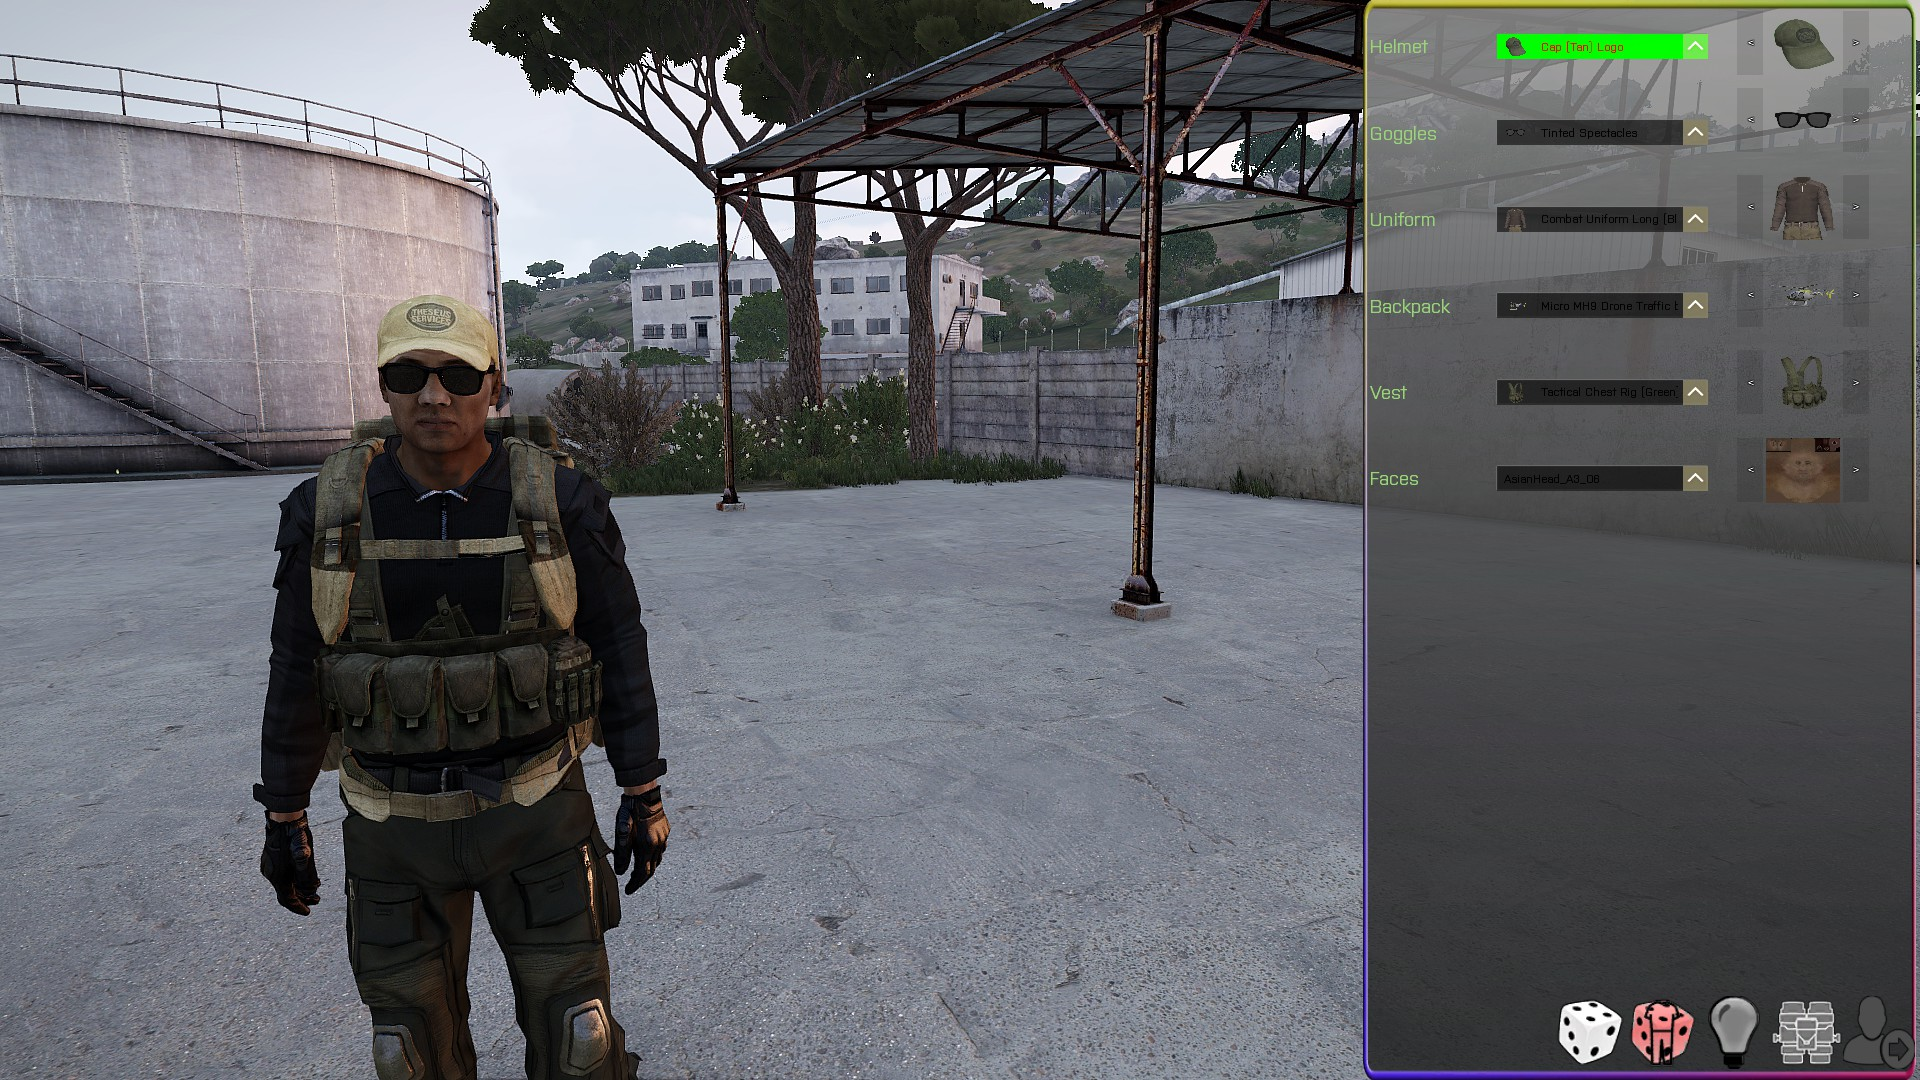 City Life RPG mod for ARMA 3 - Mod DB